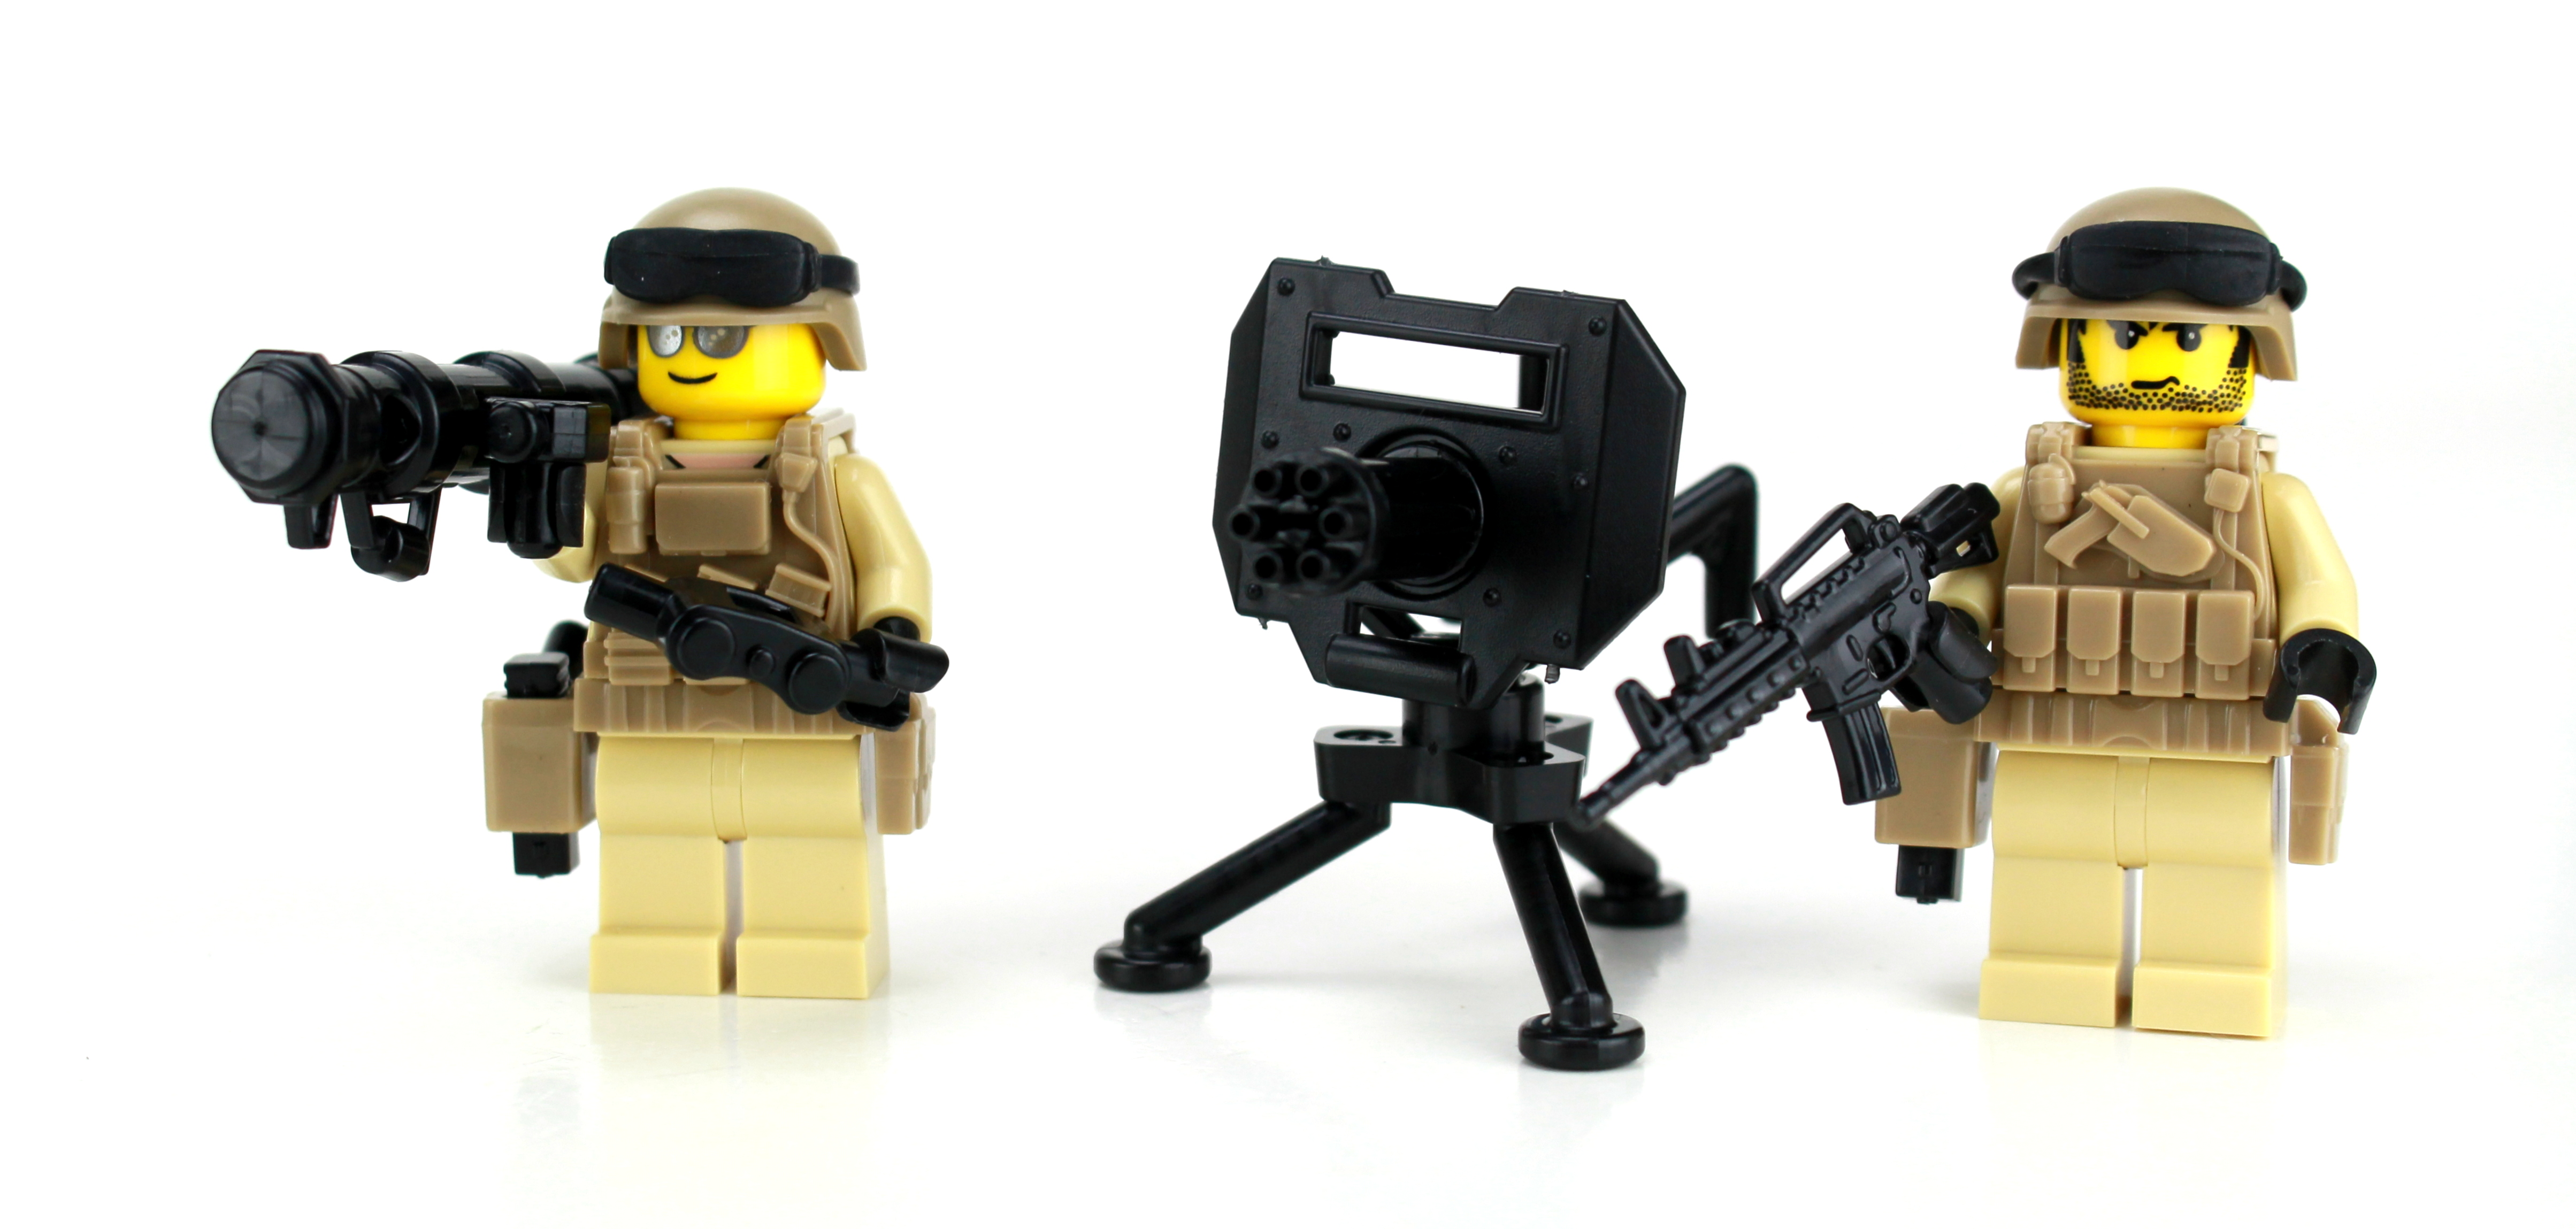 Perimeter Security Soldier Minifigures